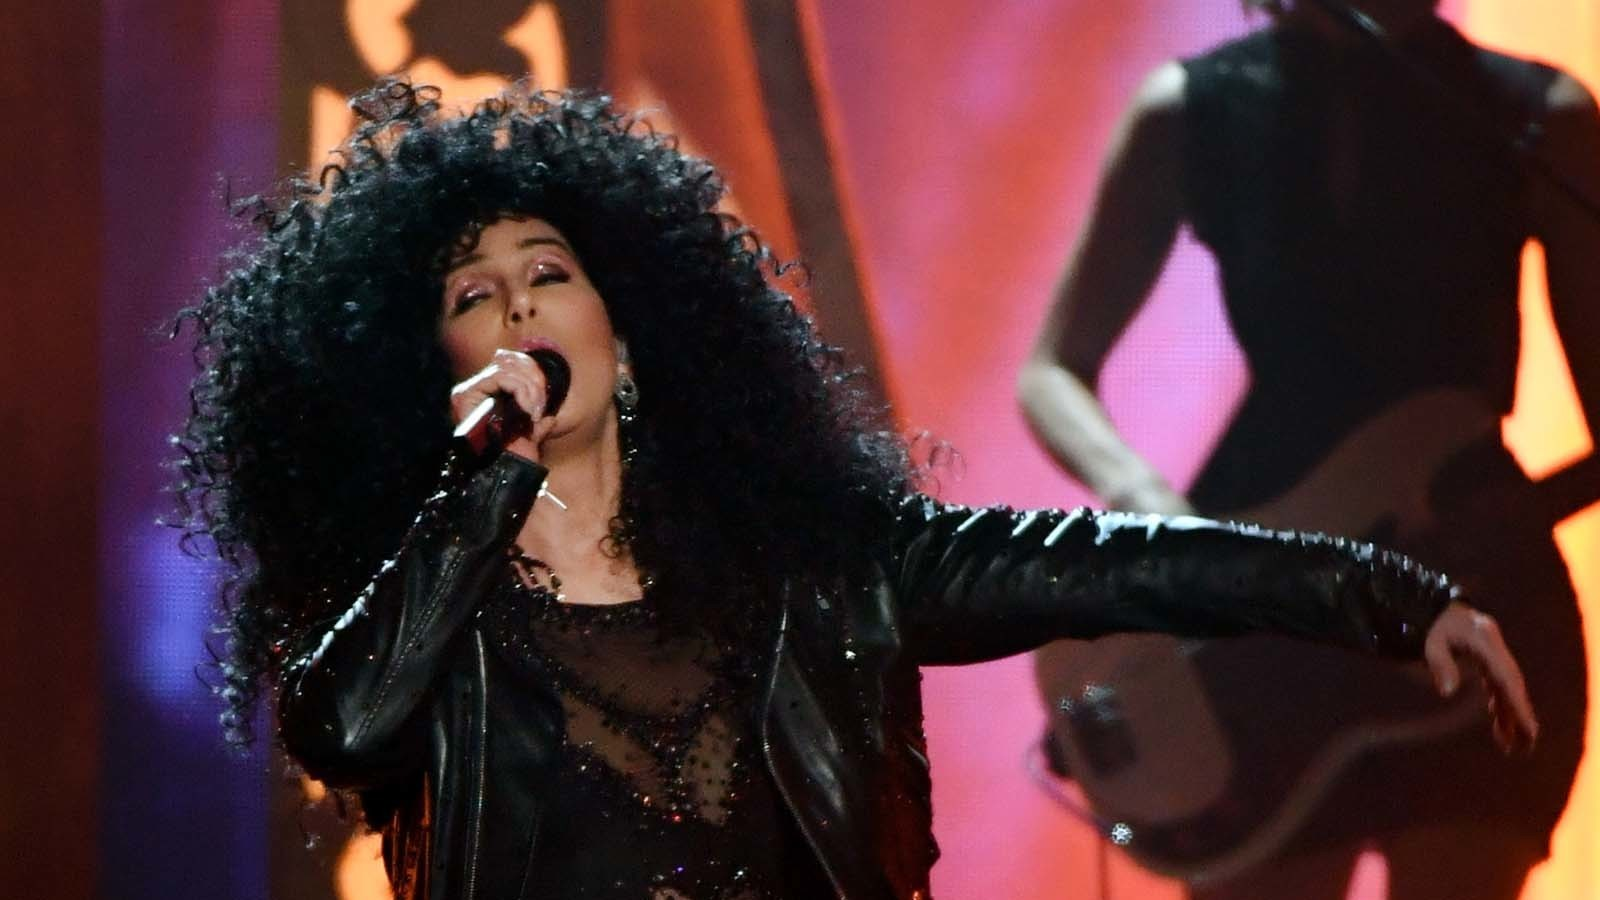 Cher performs at the 2017 Billboard Music Awards. (Ethan Miller / Getty Images)